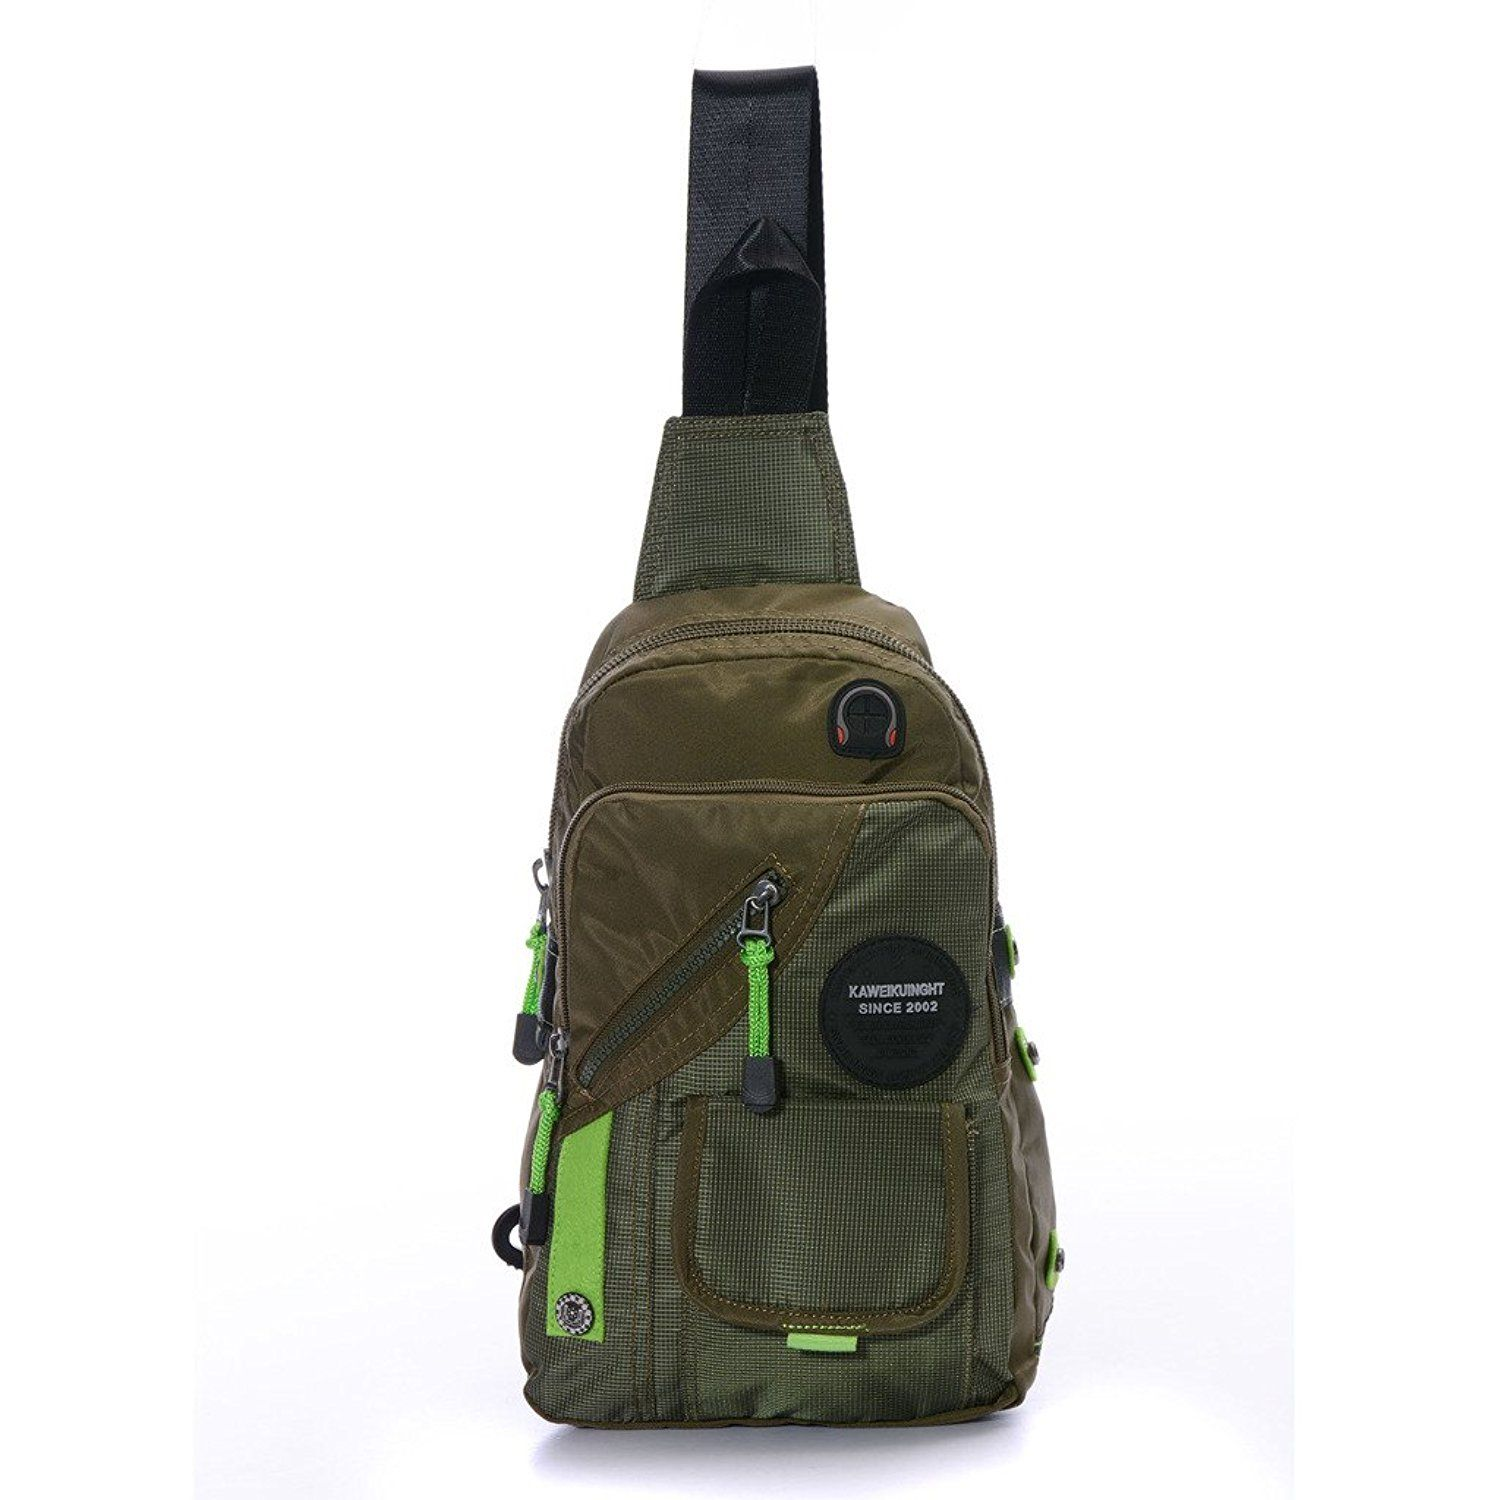 DDDH Sling Bag Small Daypack Outdoor Shoulder Chest Pack Fit Ipad   You can  get additional details at the image link. 3b7c2c5a6a